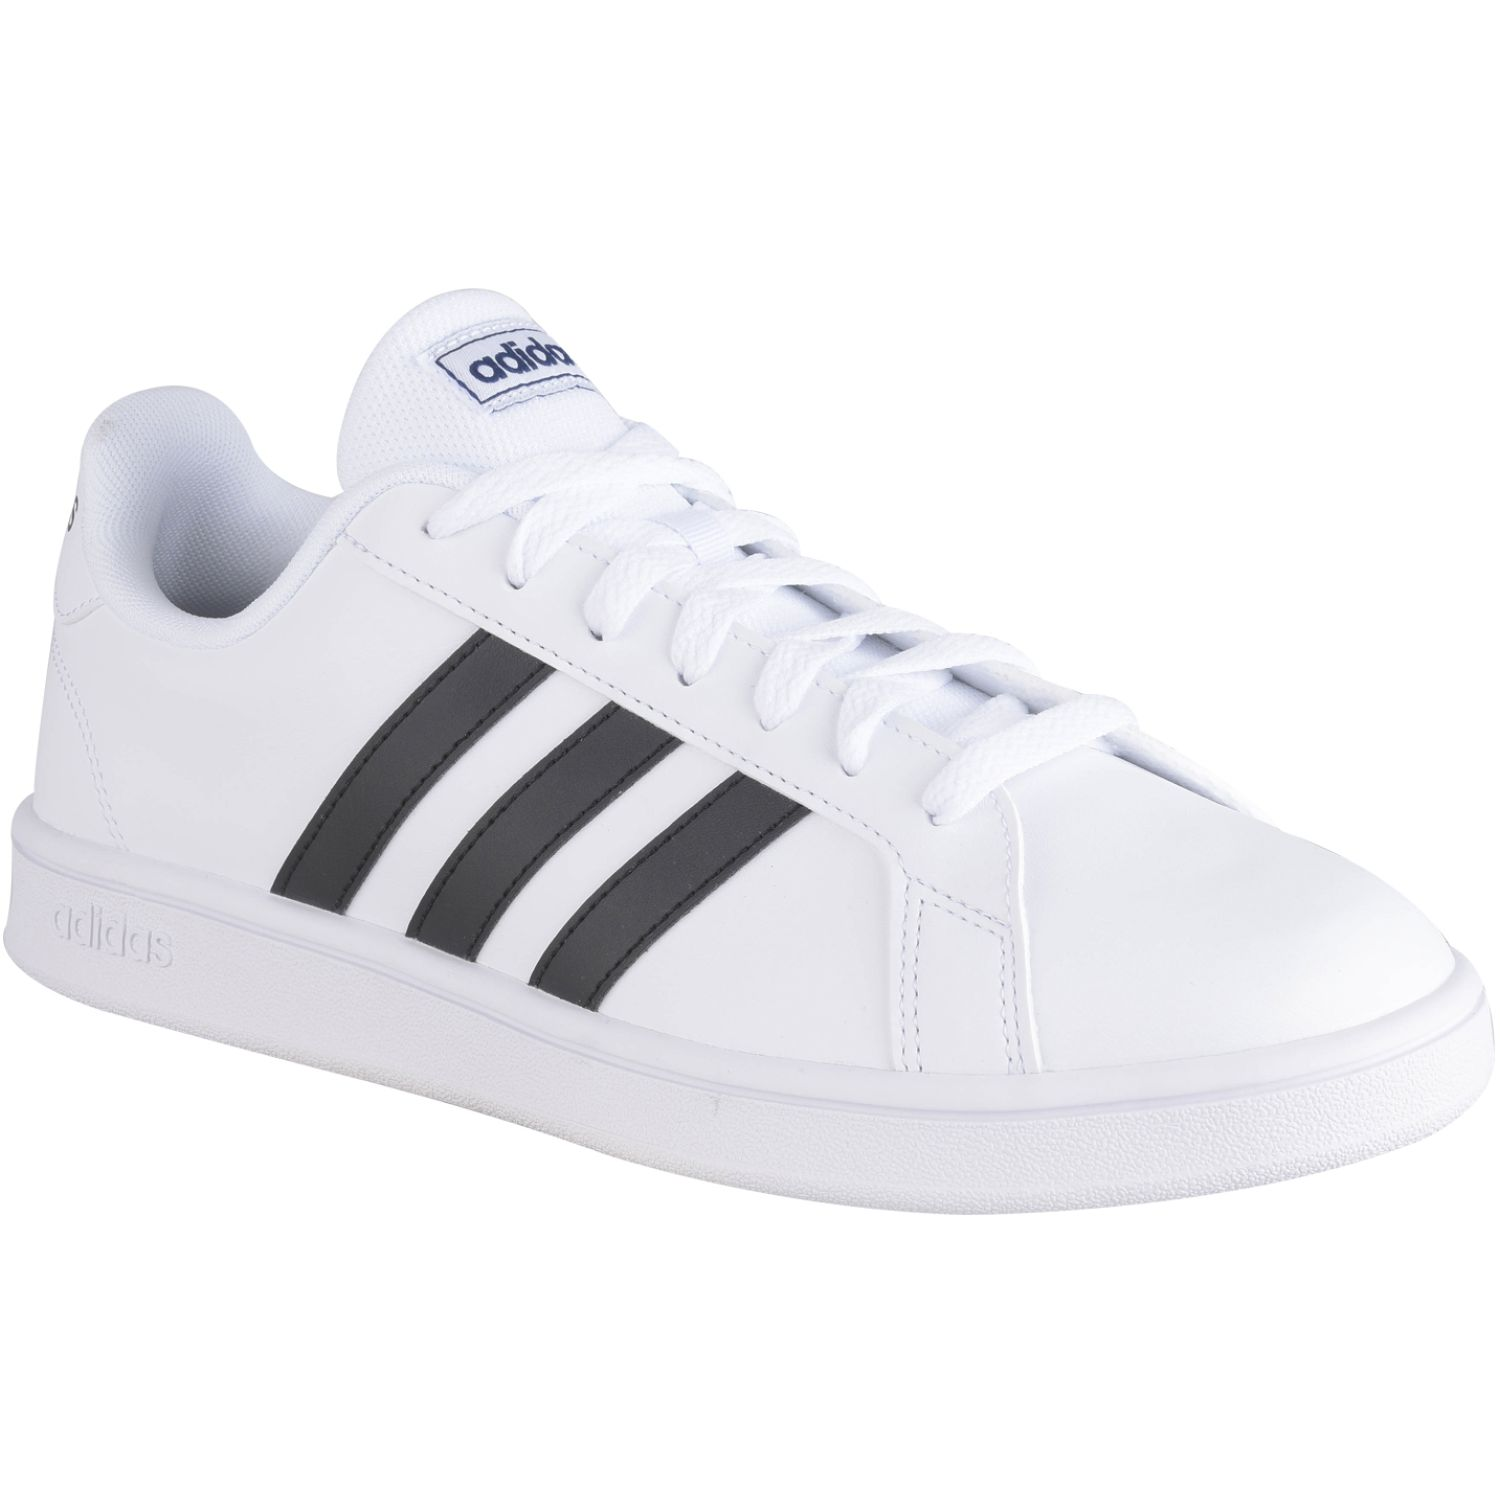 Adidas Grand Court Base Blanco / negro Tennisy deportes con raqueta